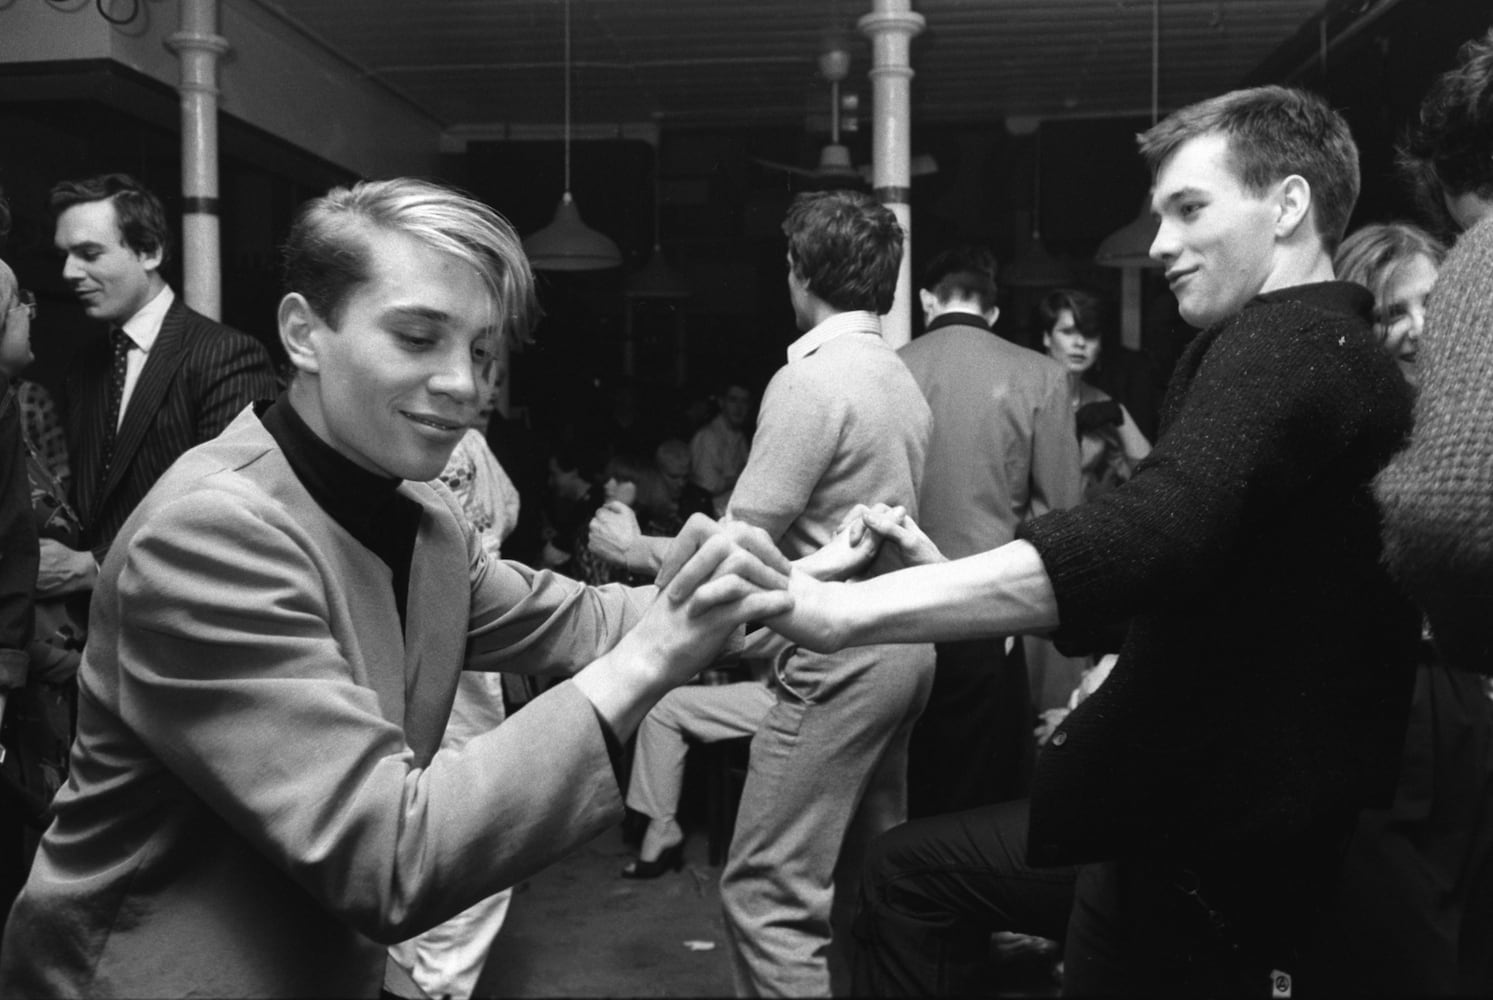 Homer Sykes, Boys dancing together, Clubbing, London, 1980